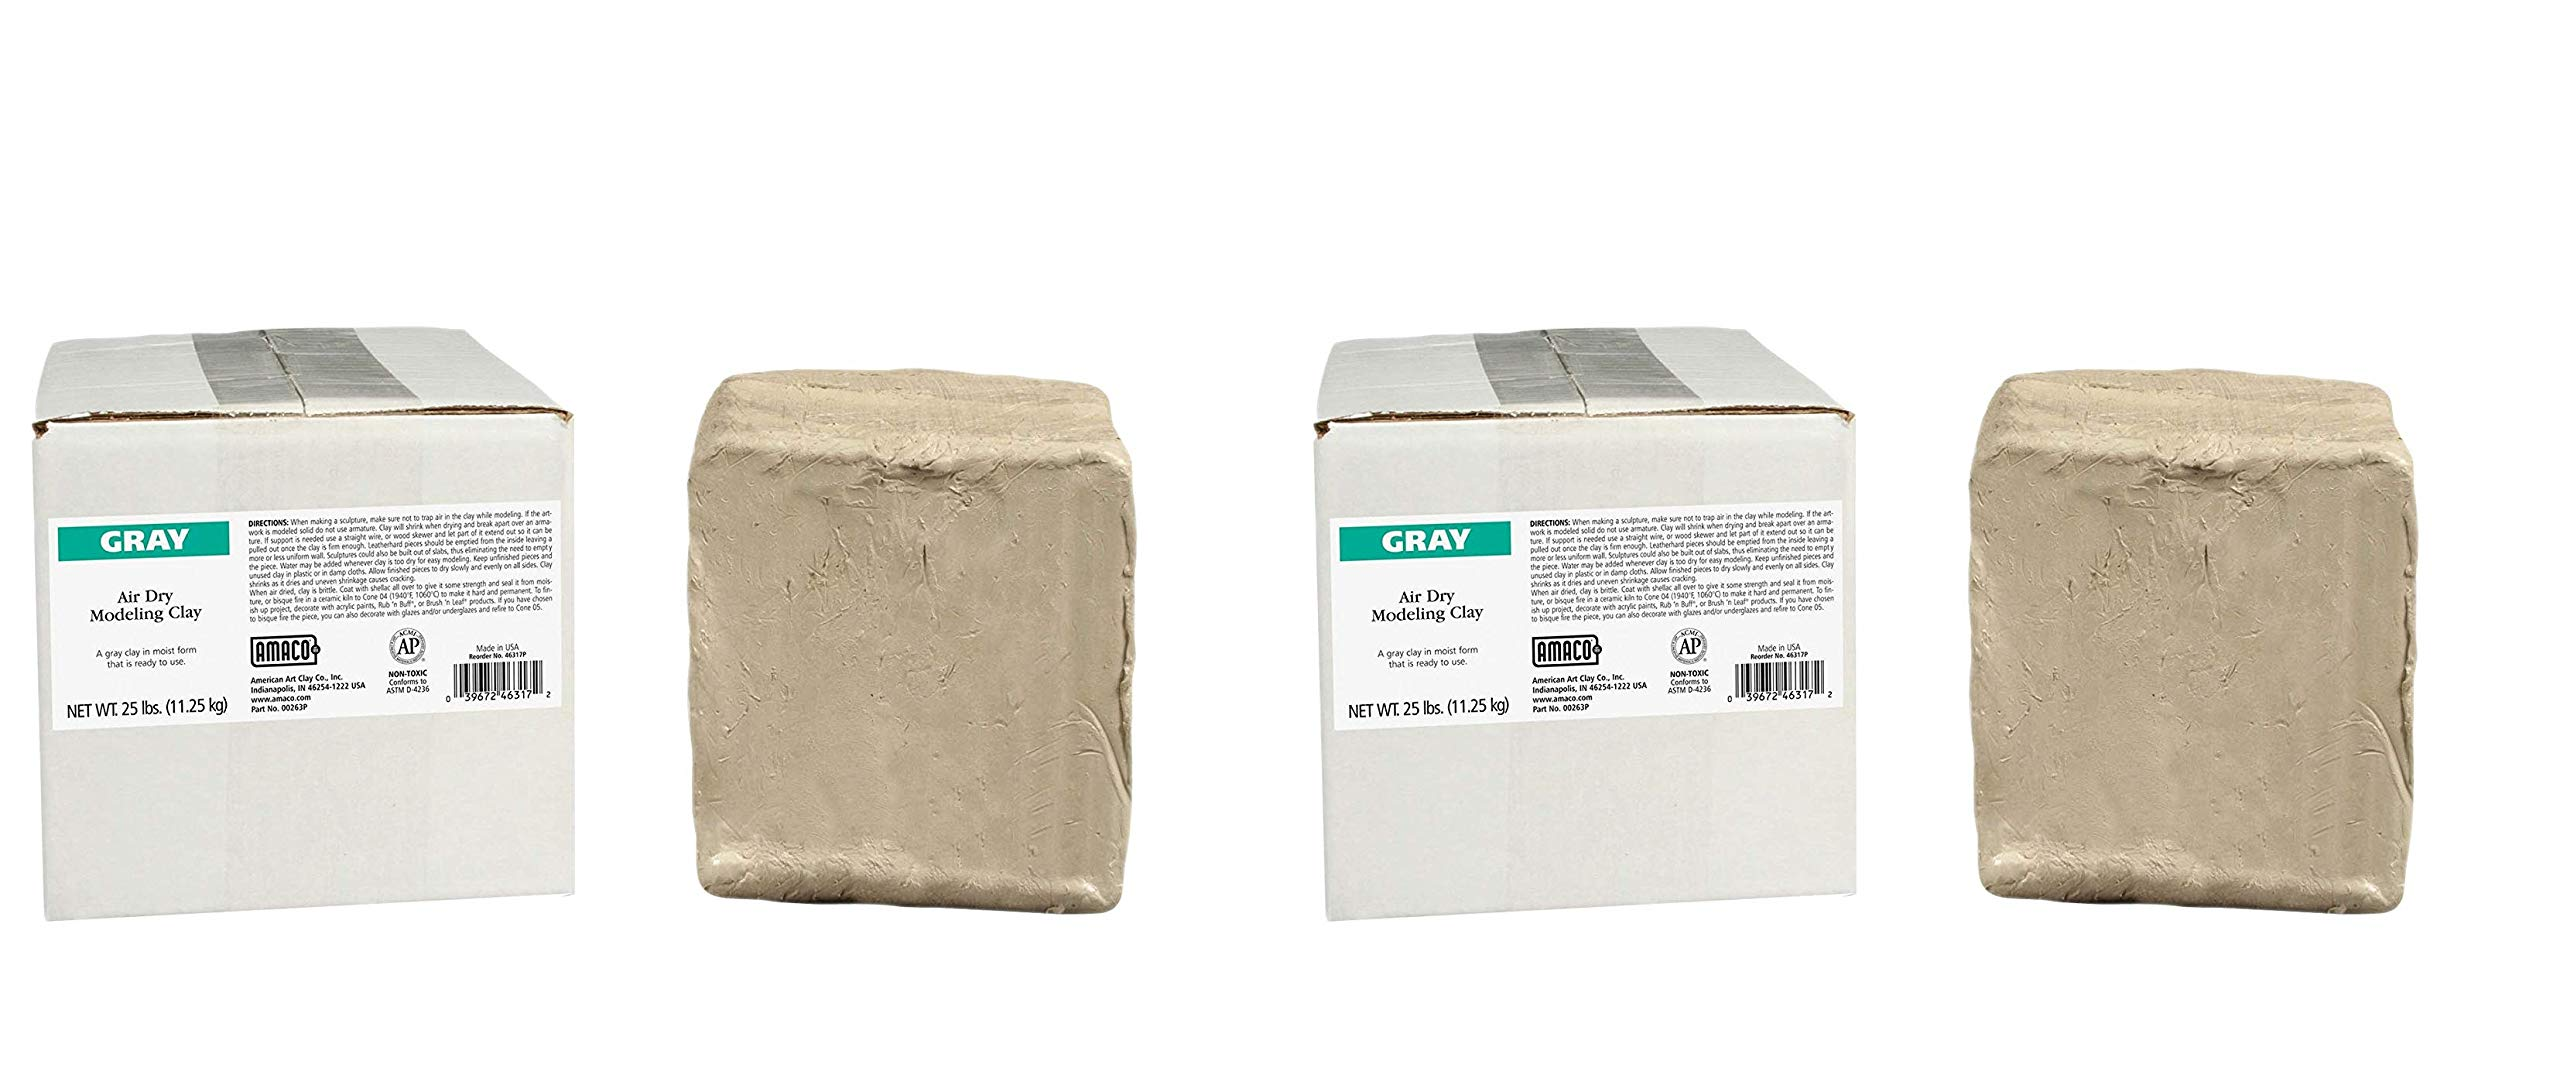 AMACO AMA46317P Air Dry Clay, Gray, 25 lbs. (Pack of 2) by AMACO (Image #1)